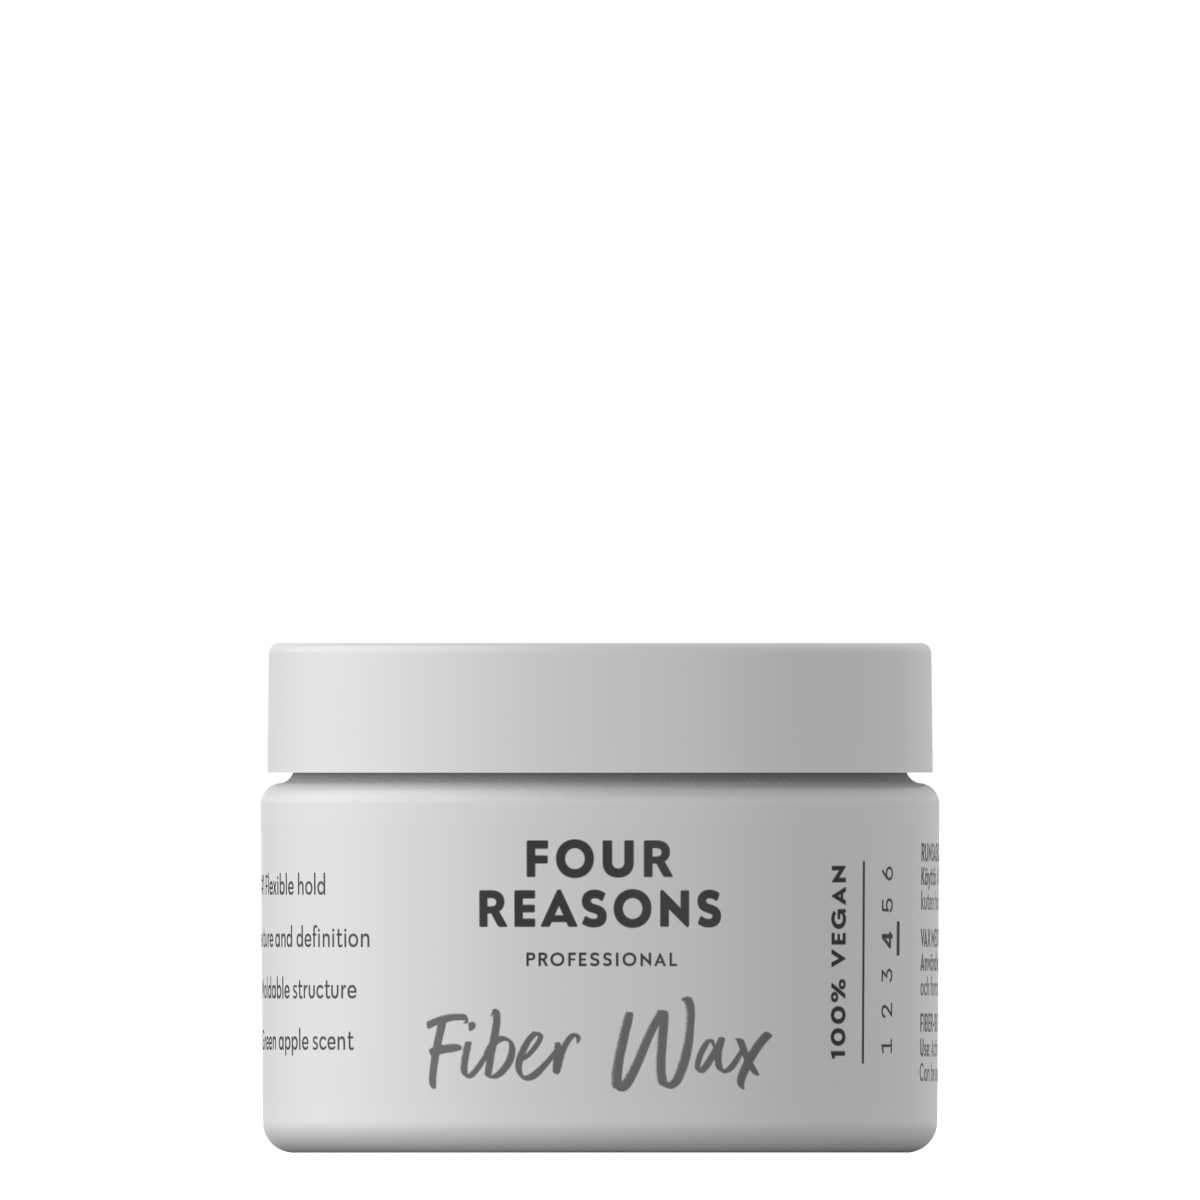 Four-Reasons-Professional-Fiber-Wax